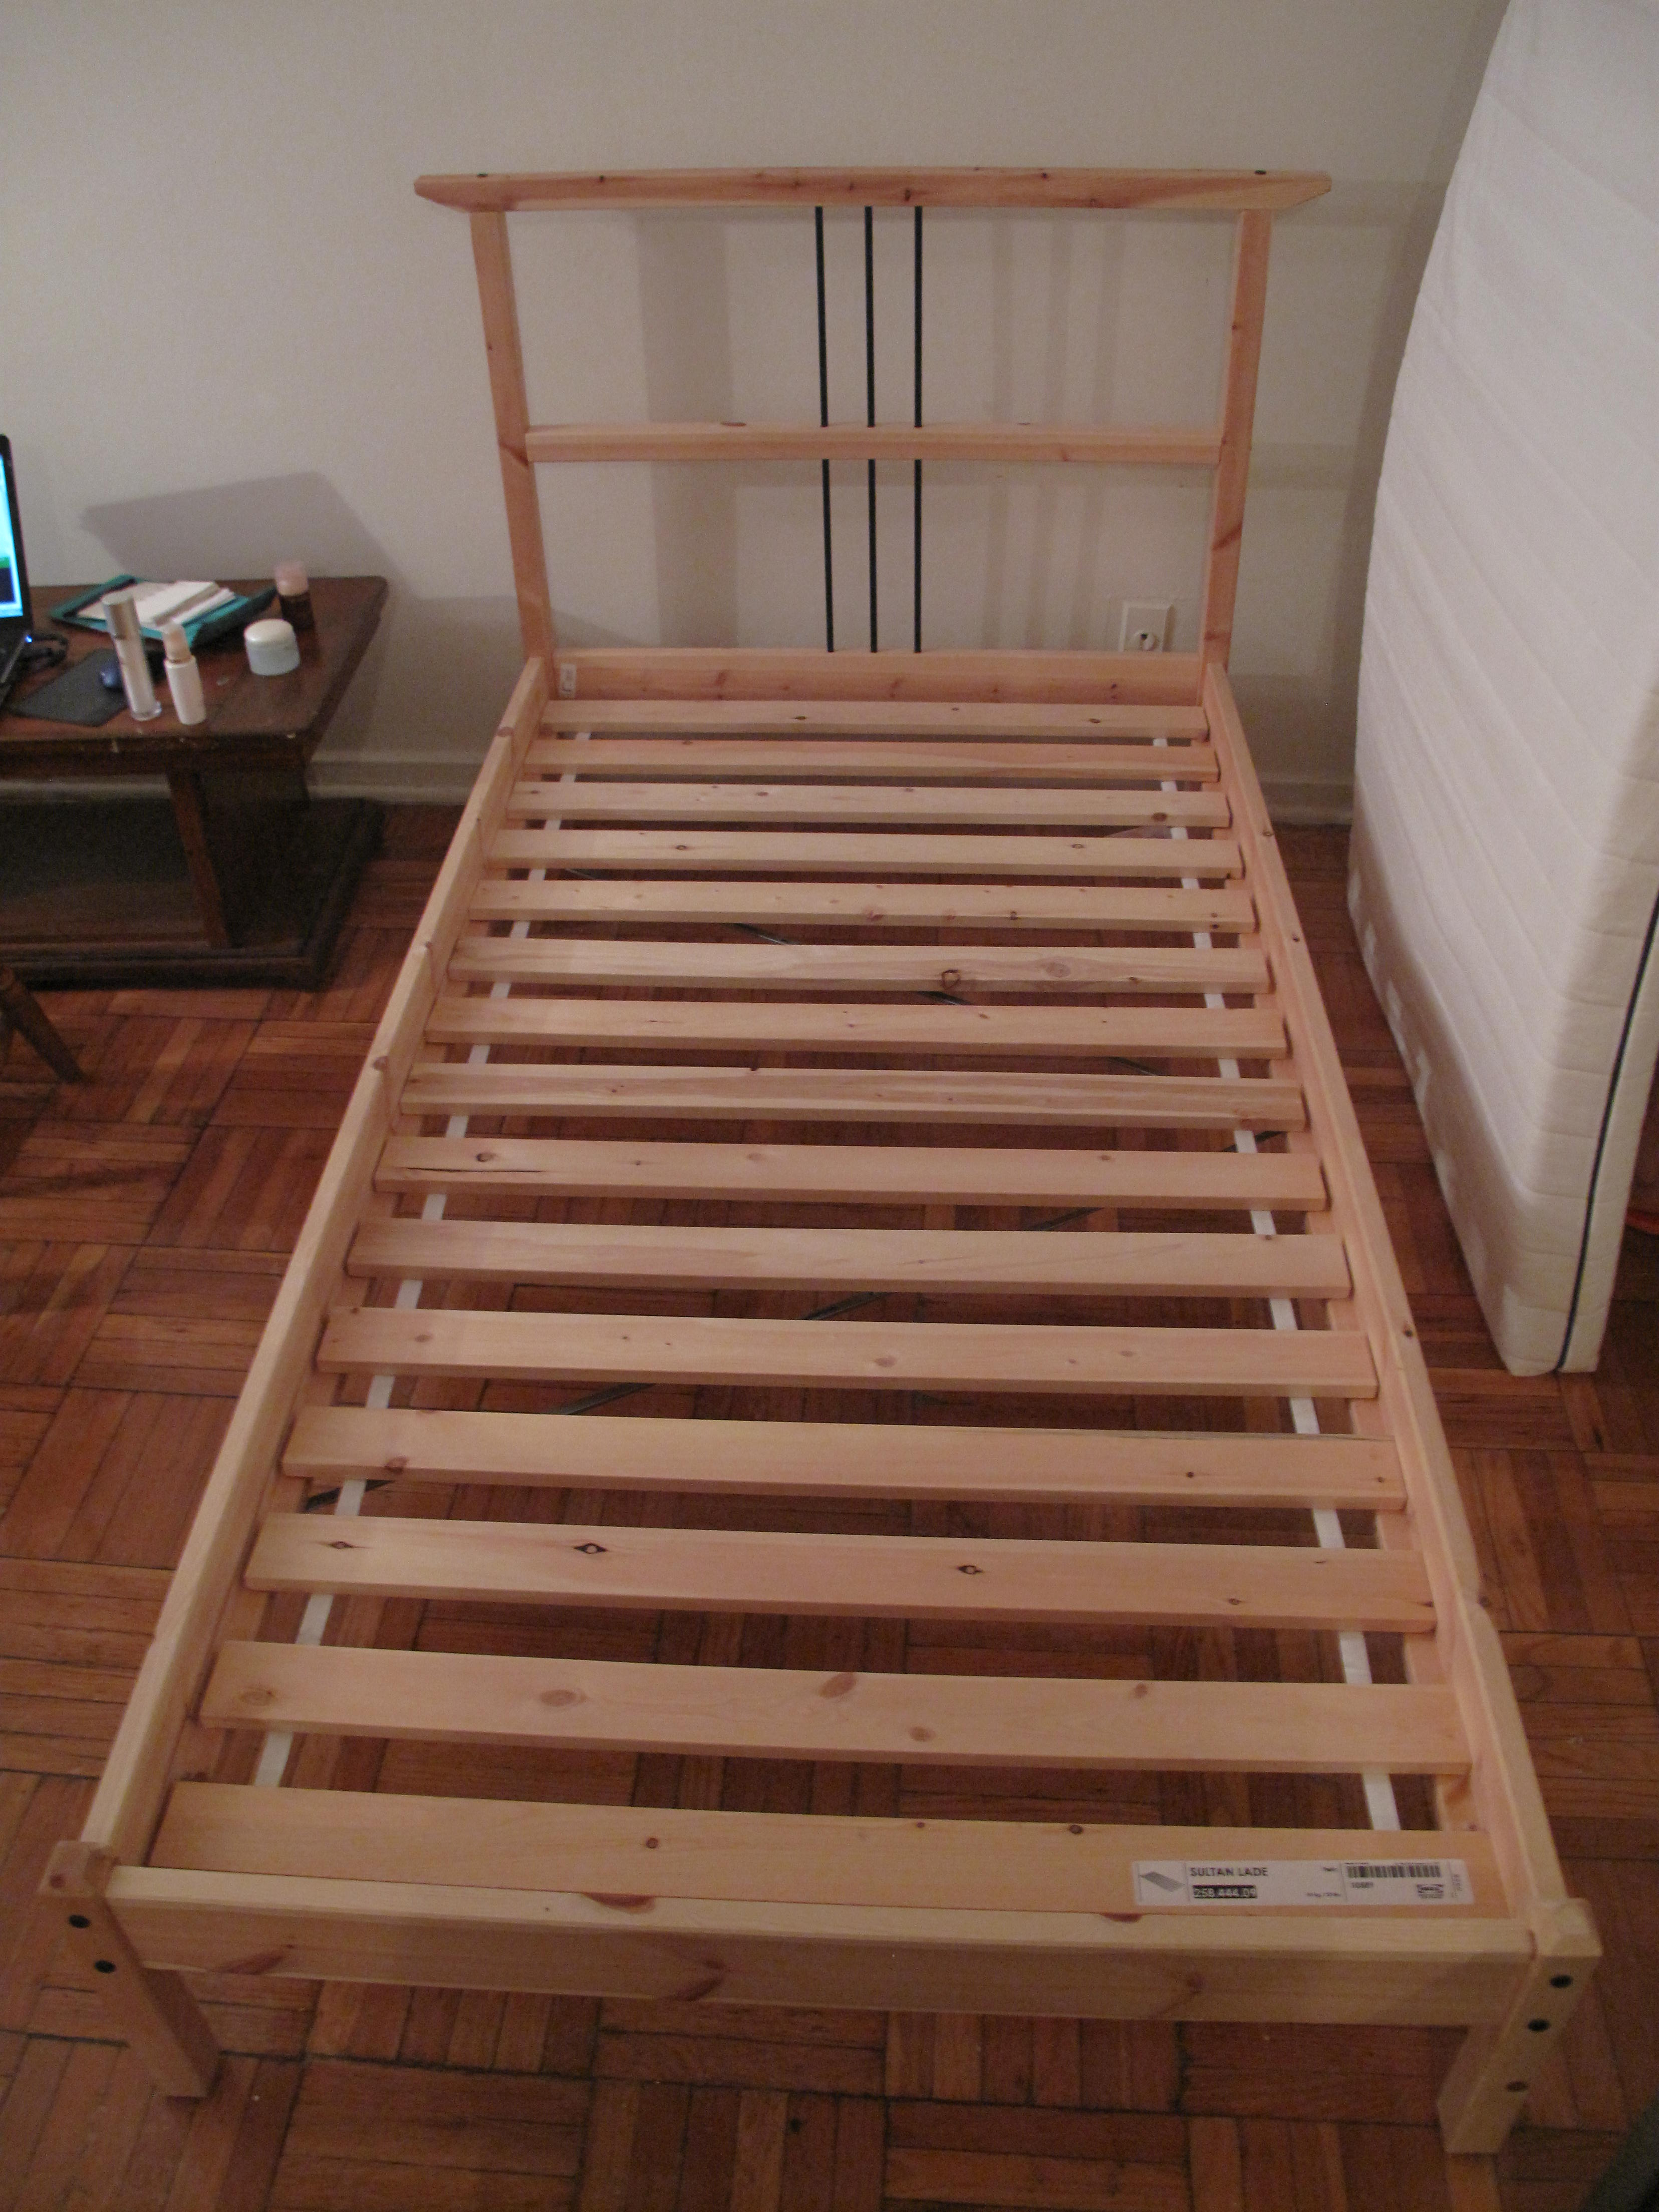 Ikea Dresser Drawers WonT Close ~ 老 中 网  IKEA twin size bed for sale